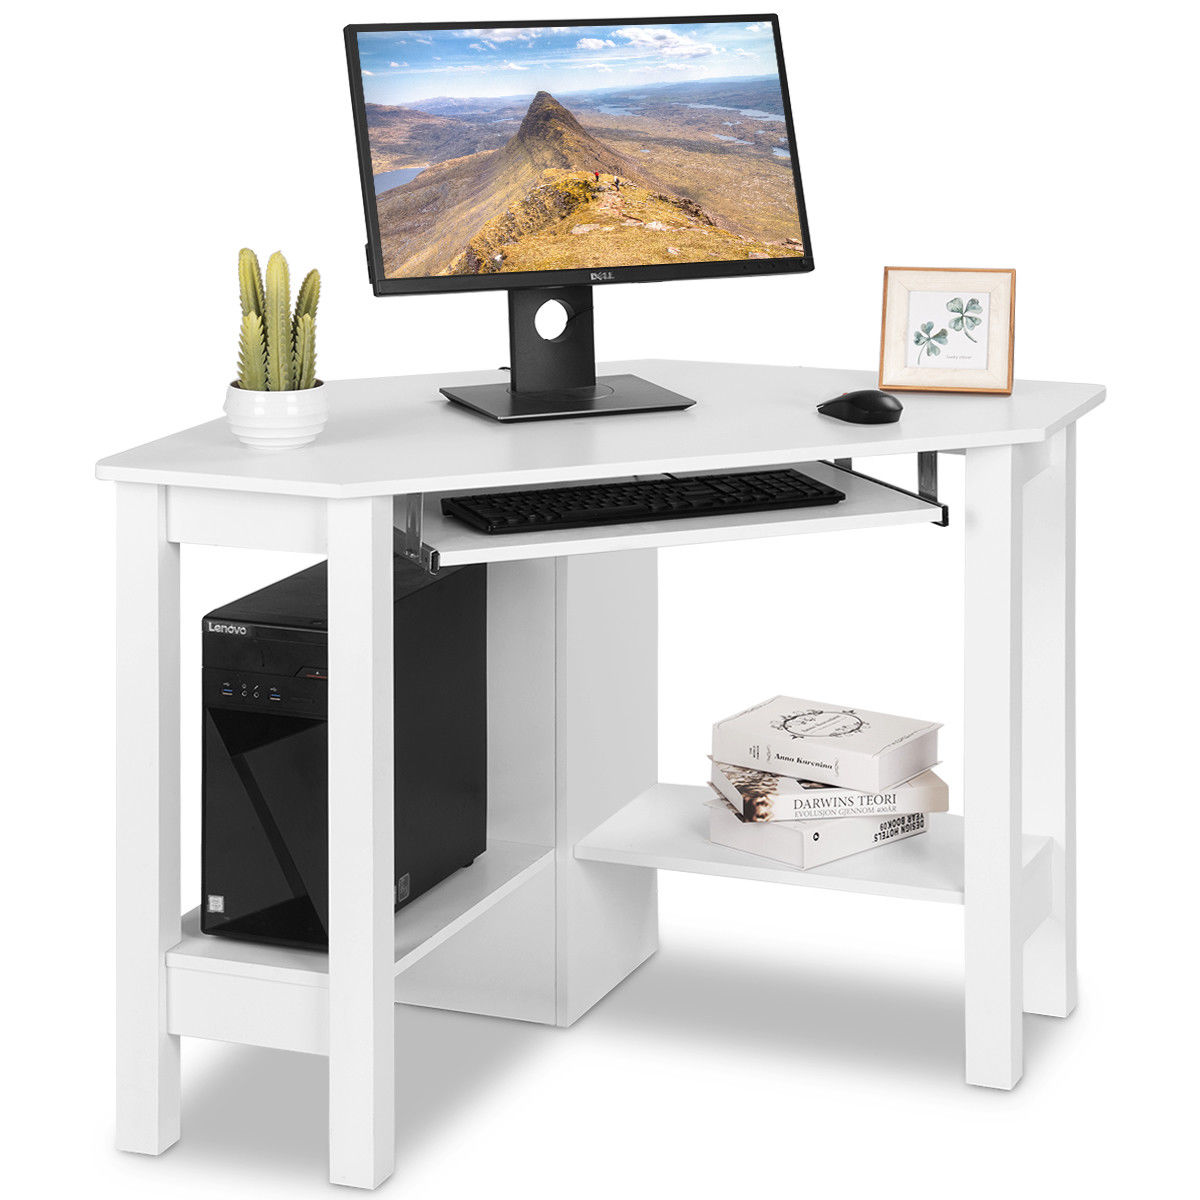 Costway Wooden Corner Desk With Drawer Computer PC Table Study Office Room White